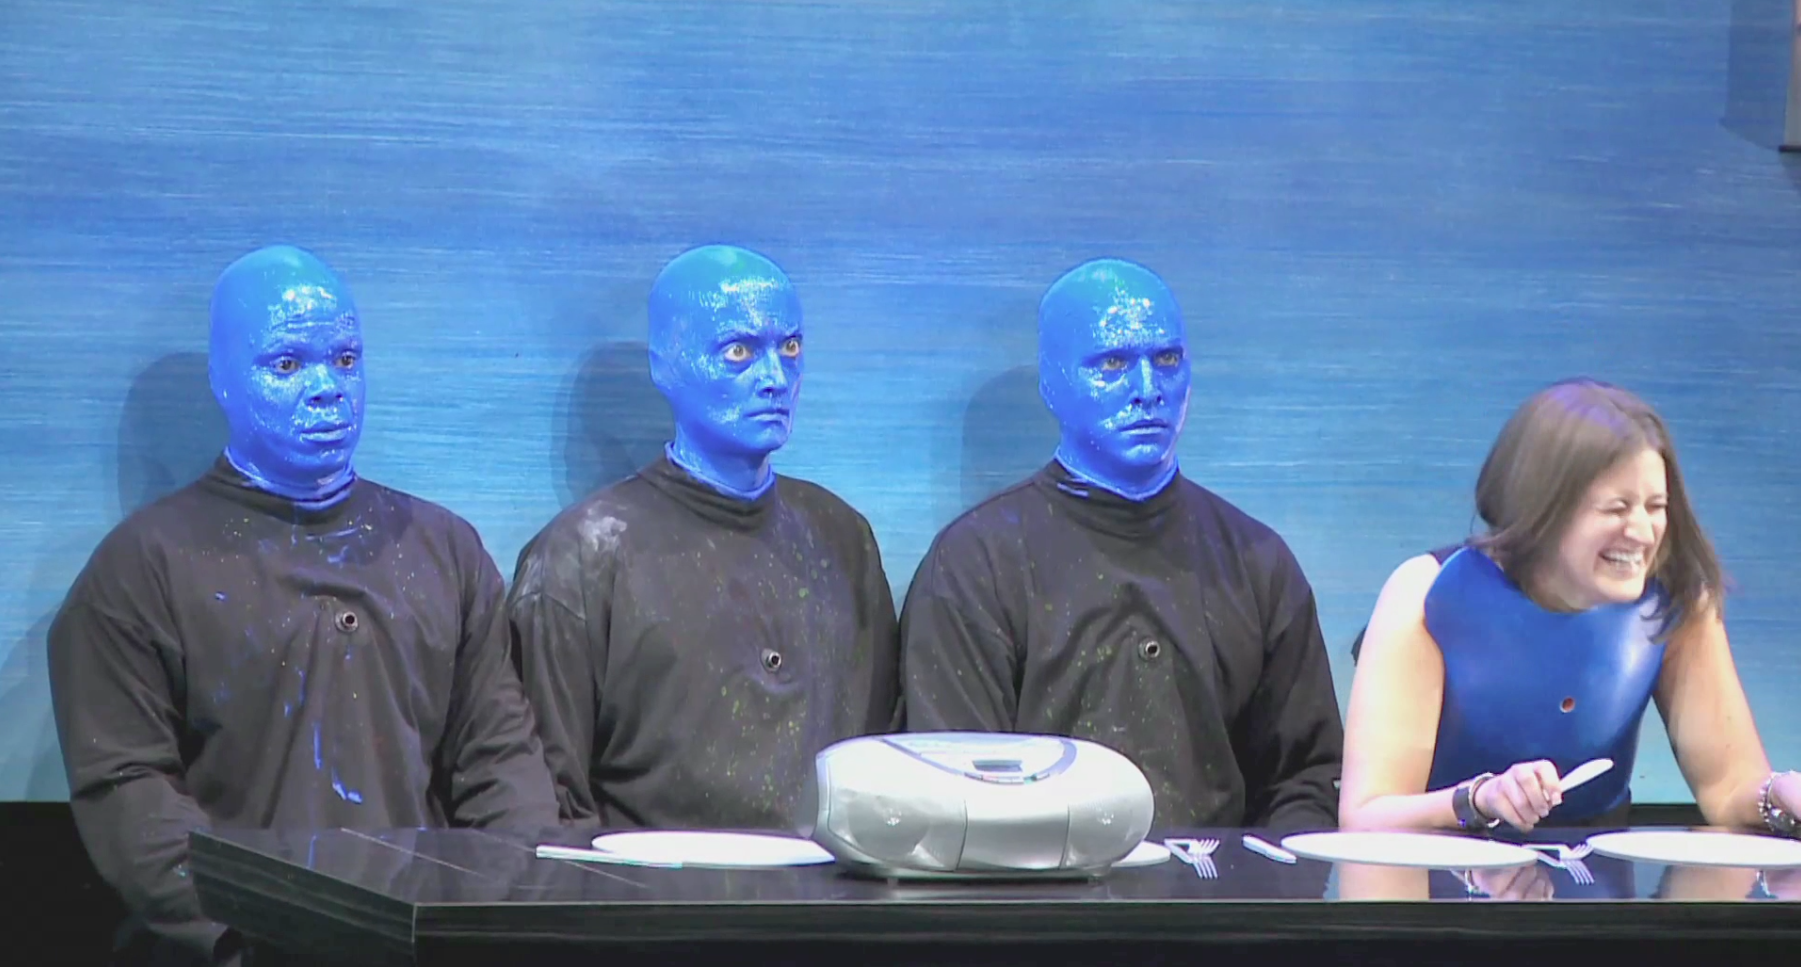 Die Blue Man Group in Berlin. © spothits/mhoch4tv